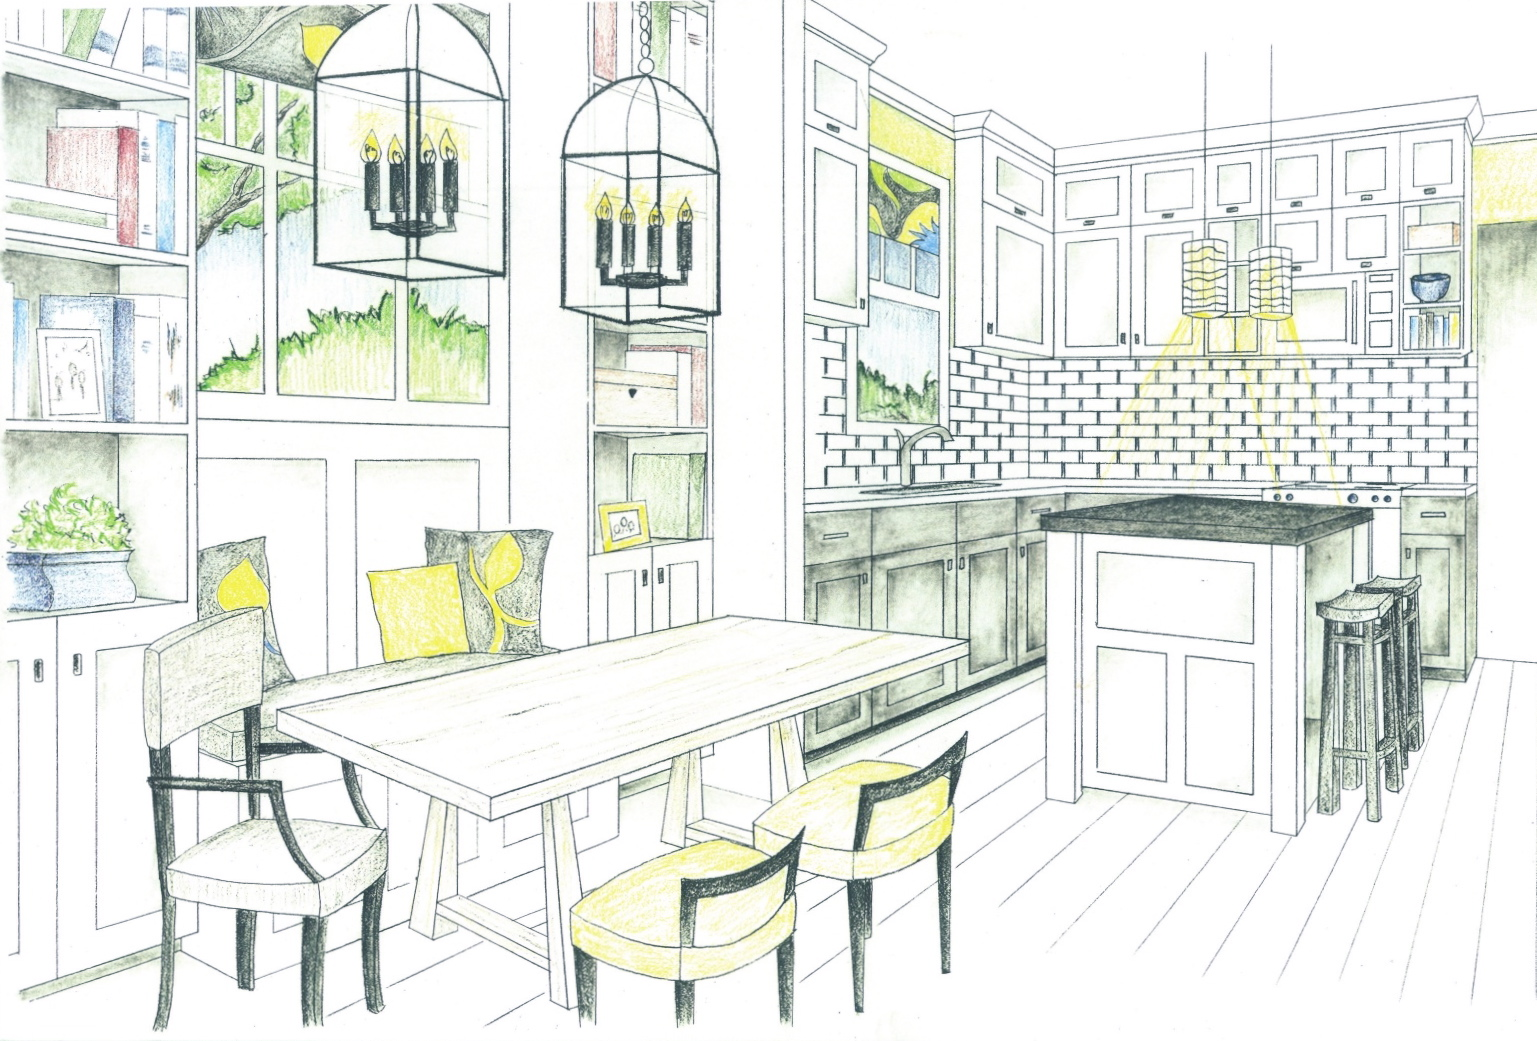 Kitchen Table Drawing at GetDrawings com | Free for personal